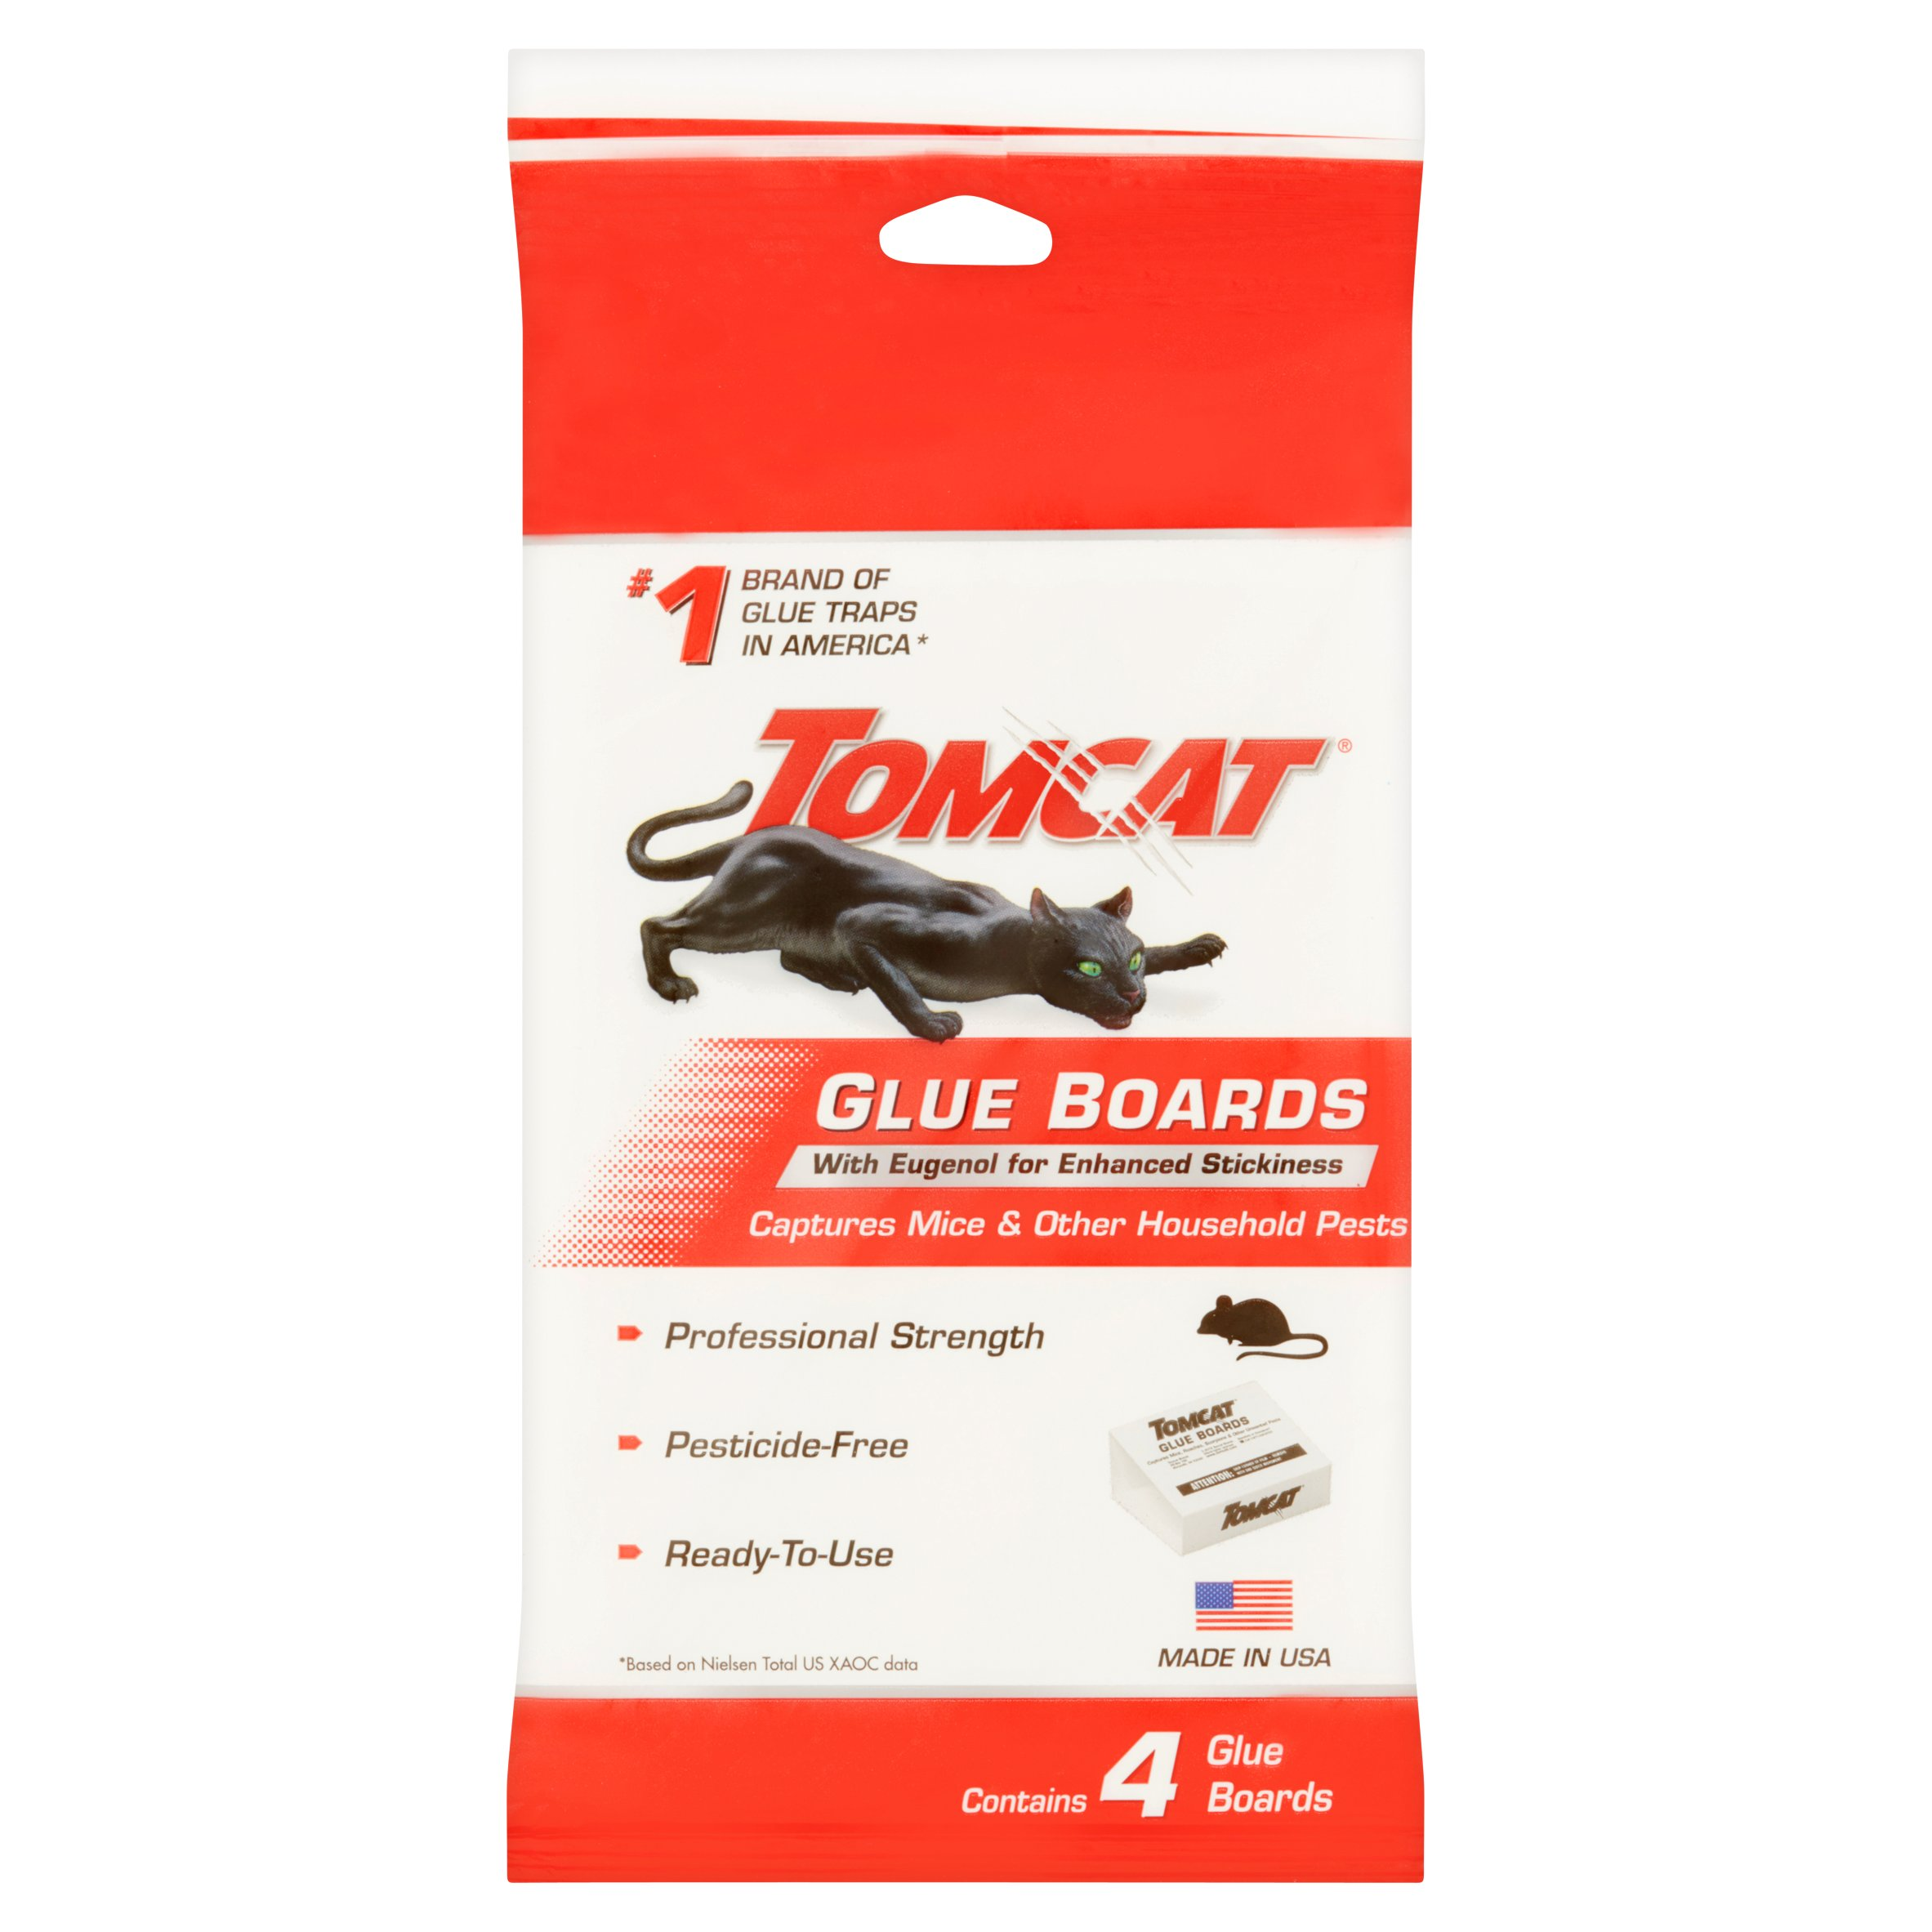 Tomcat Glue Boards with Eugenol for Enhanced Stickiness 4 pack